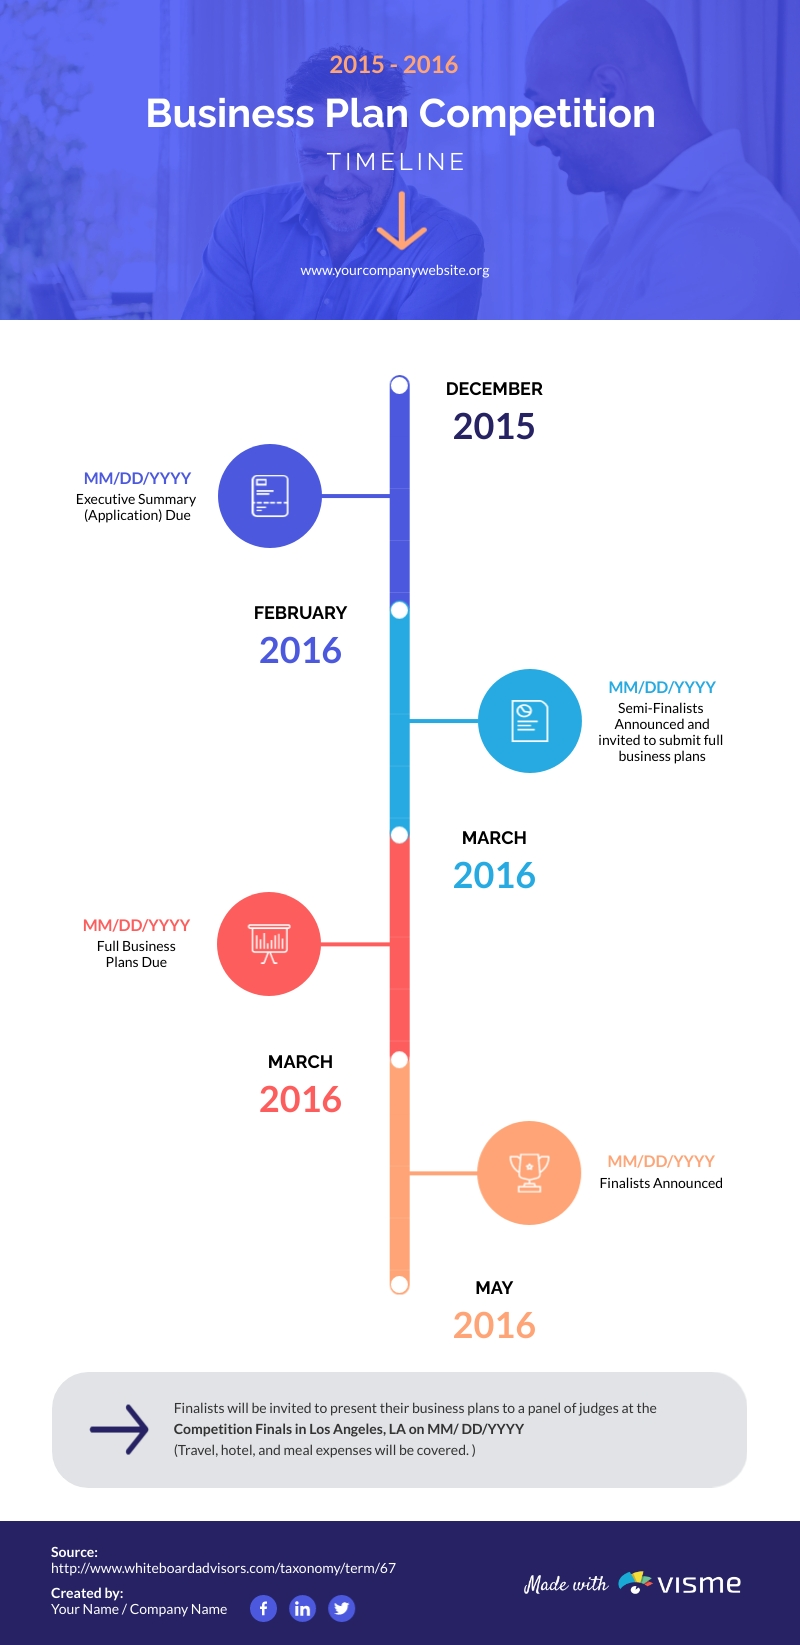 The 2015-2016 Business Plan Competition Timeline Template